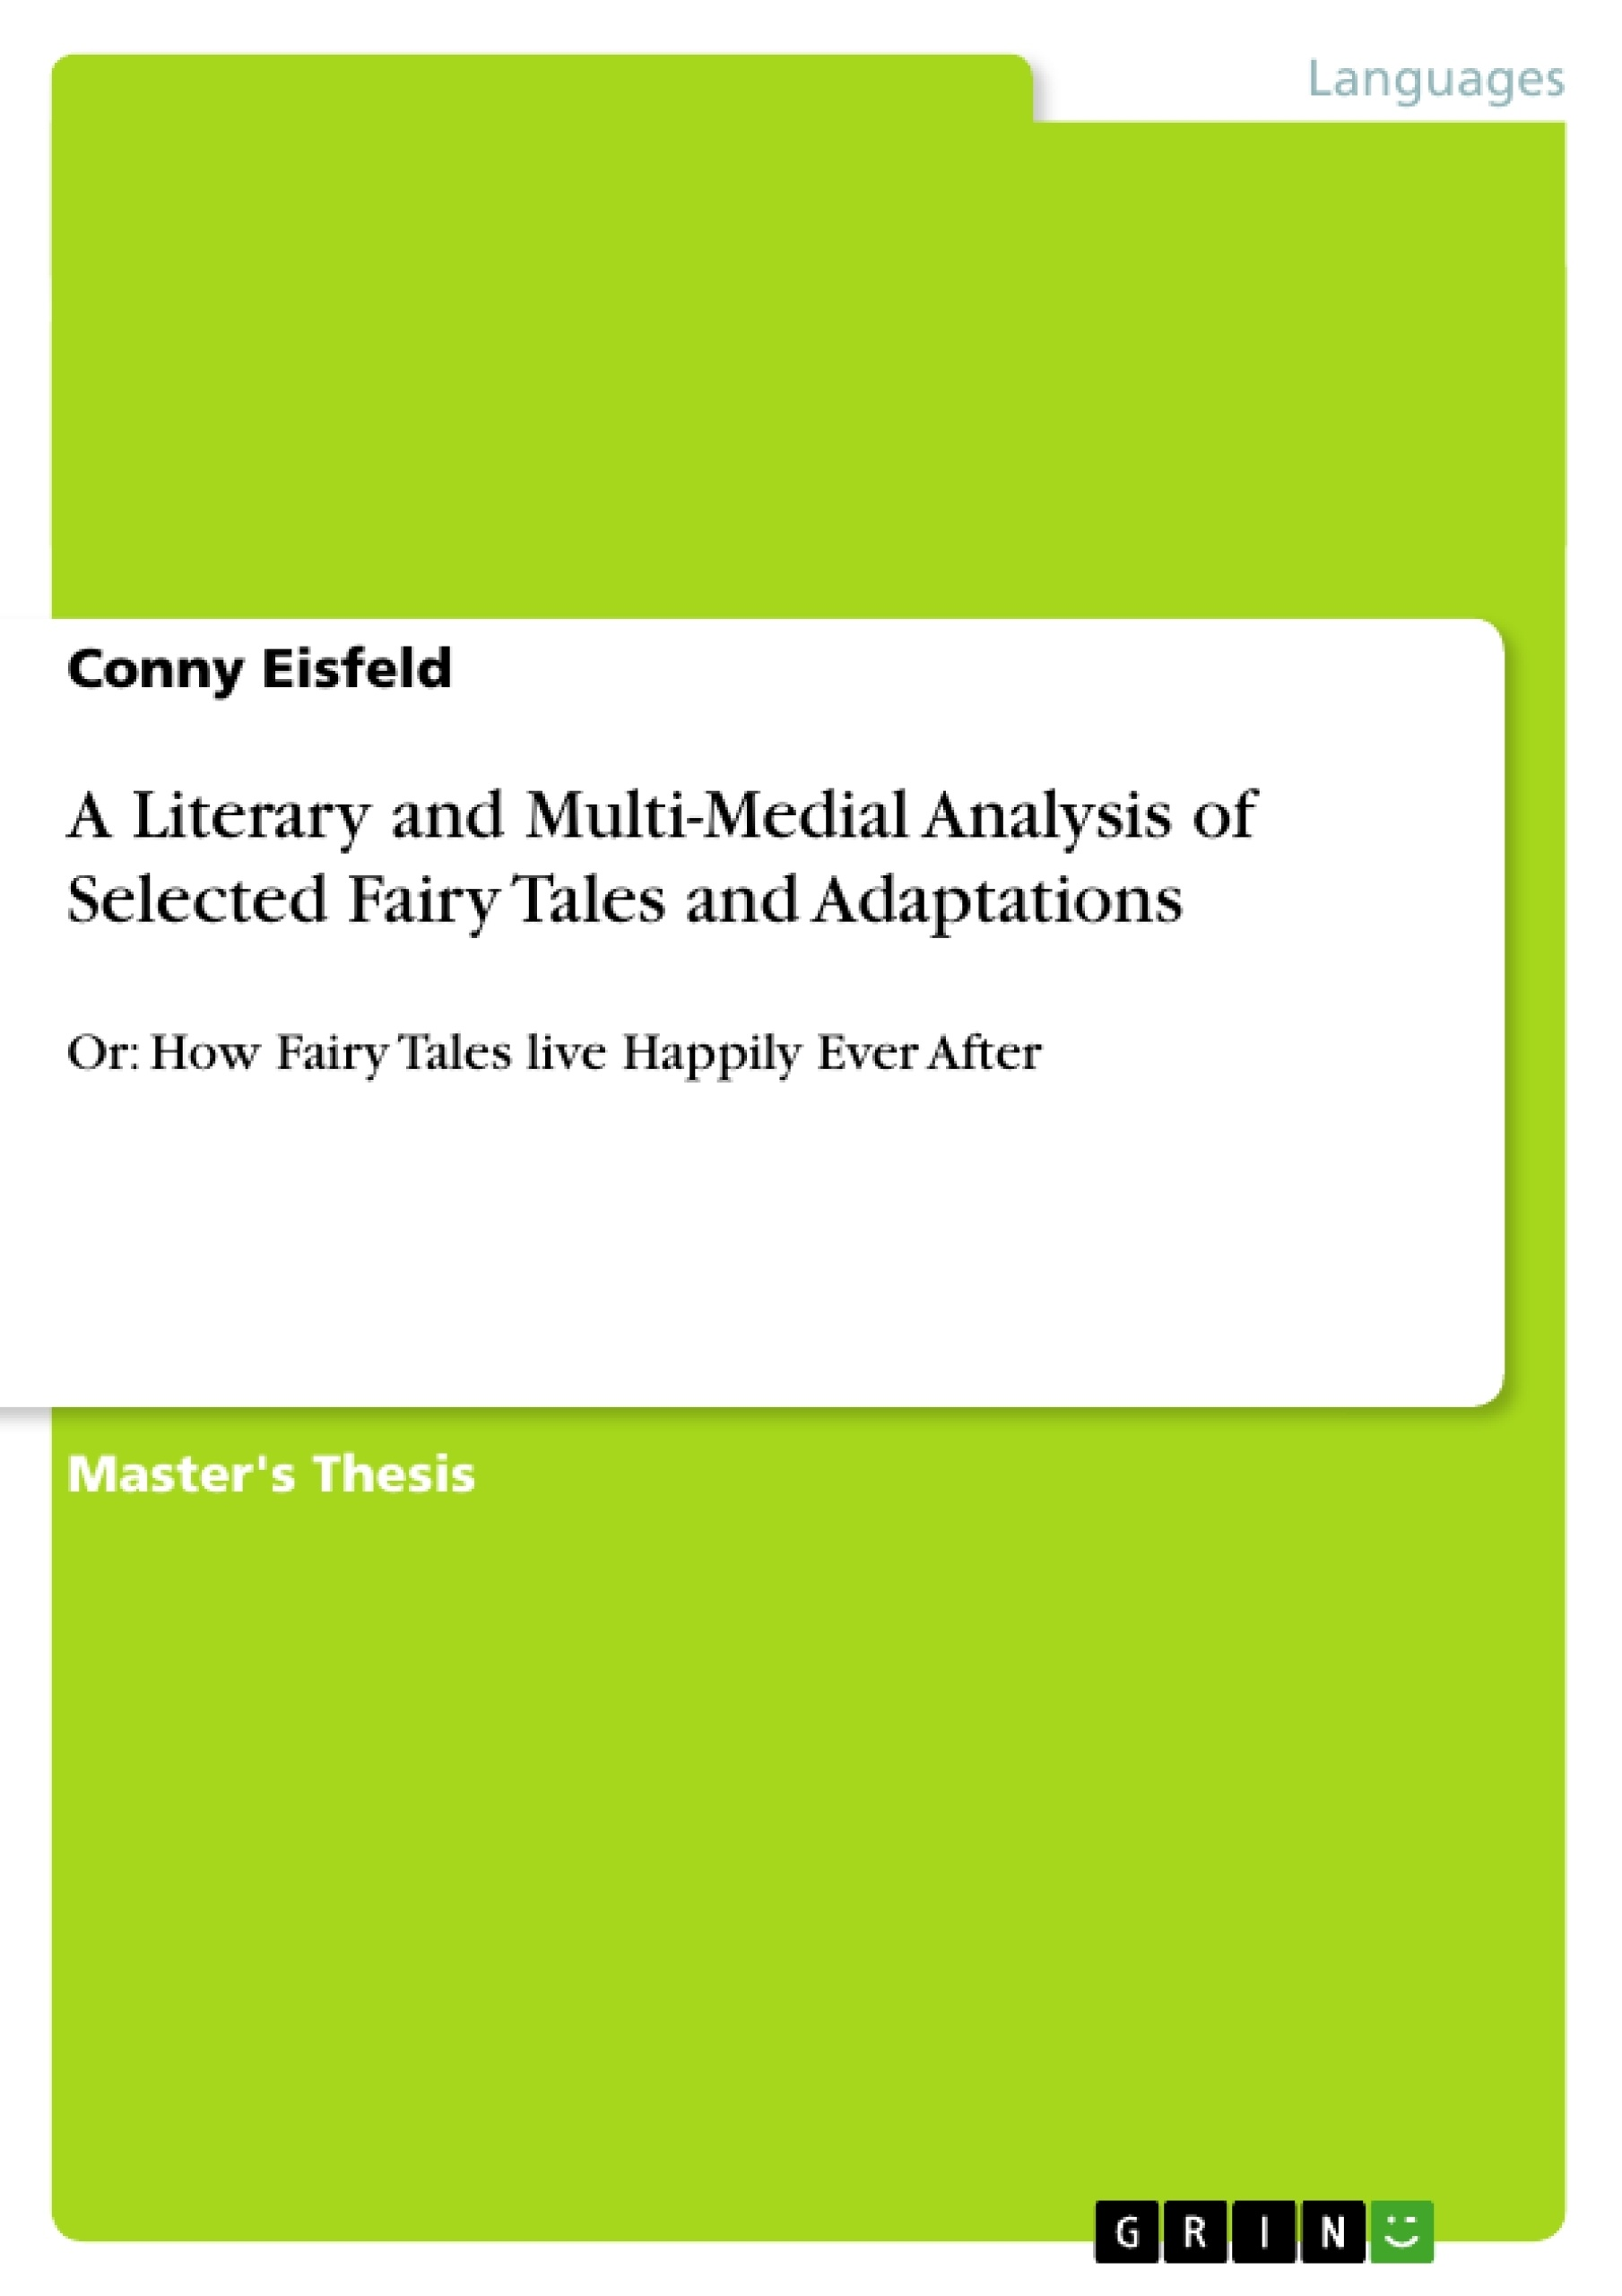 a literary and multi medial analysis of selected fairy tales and